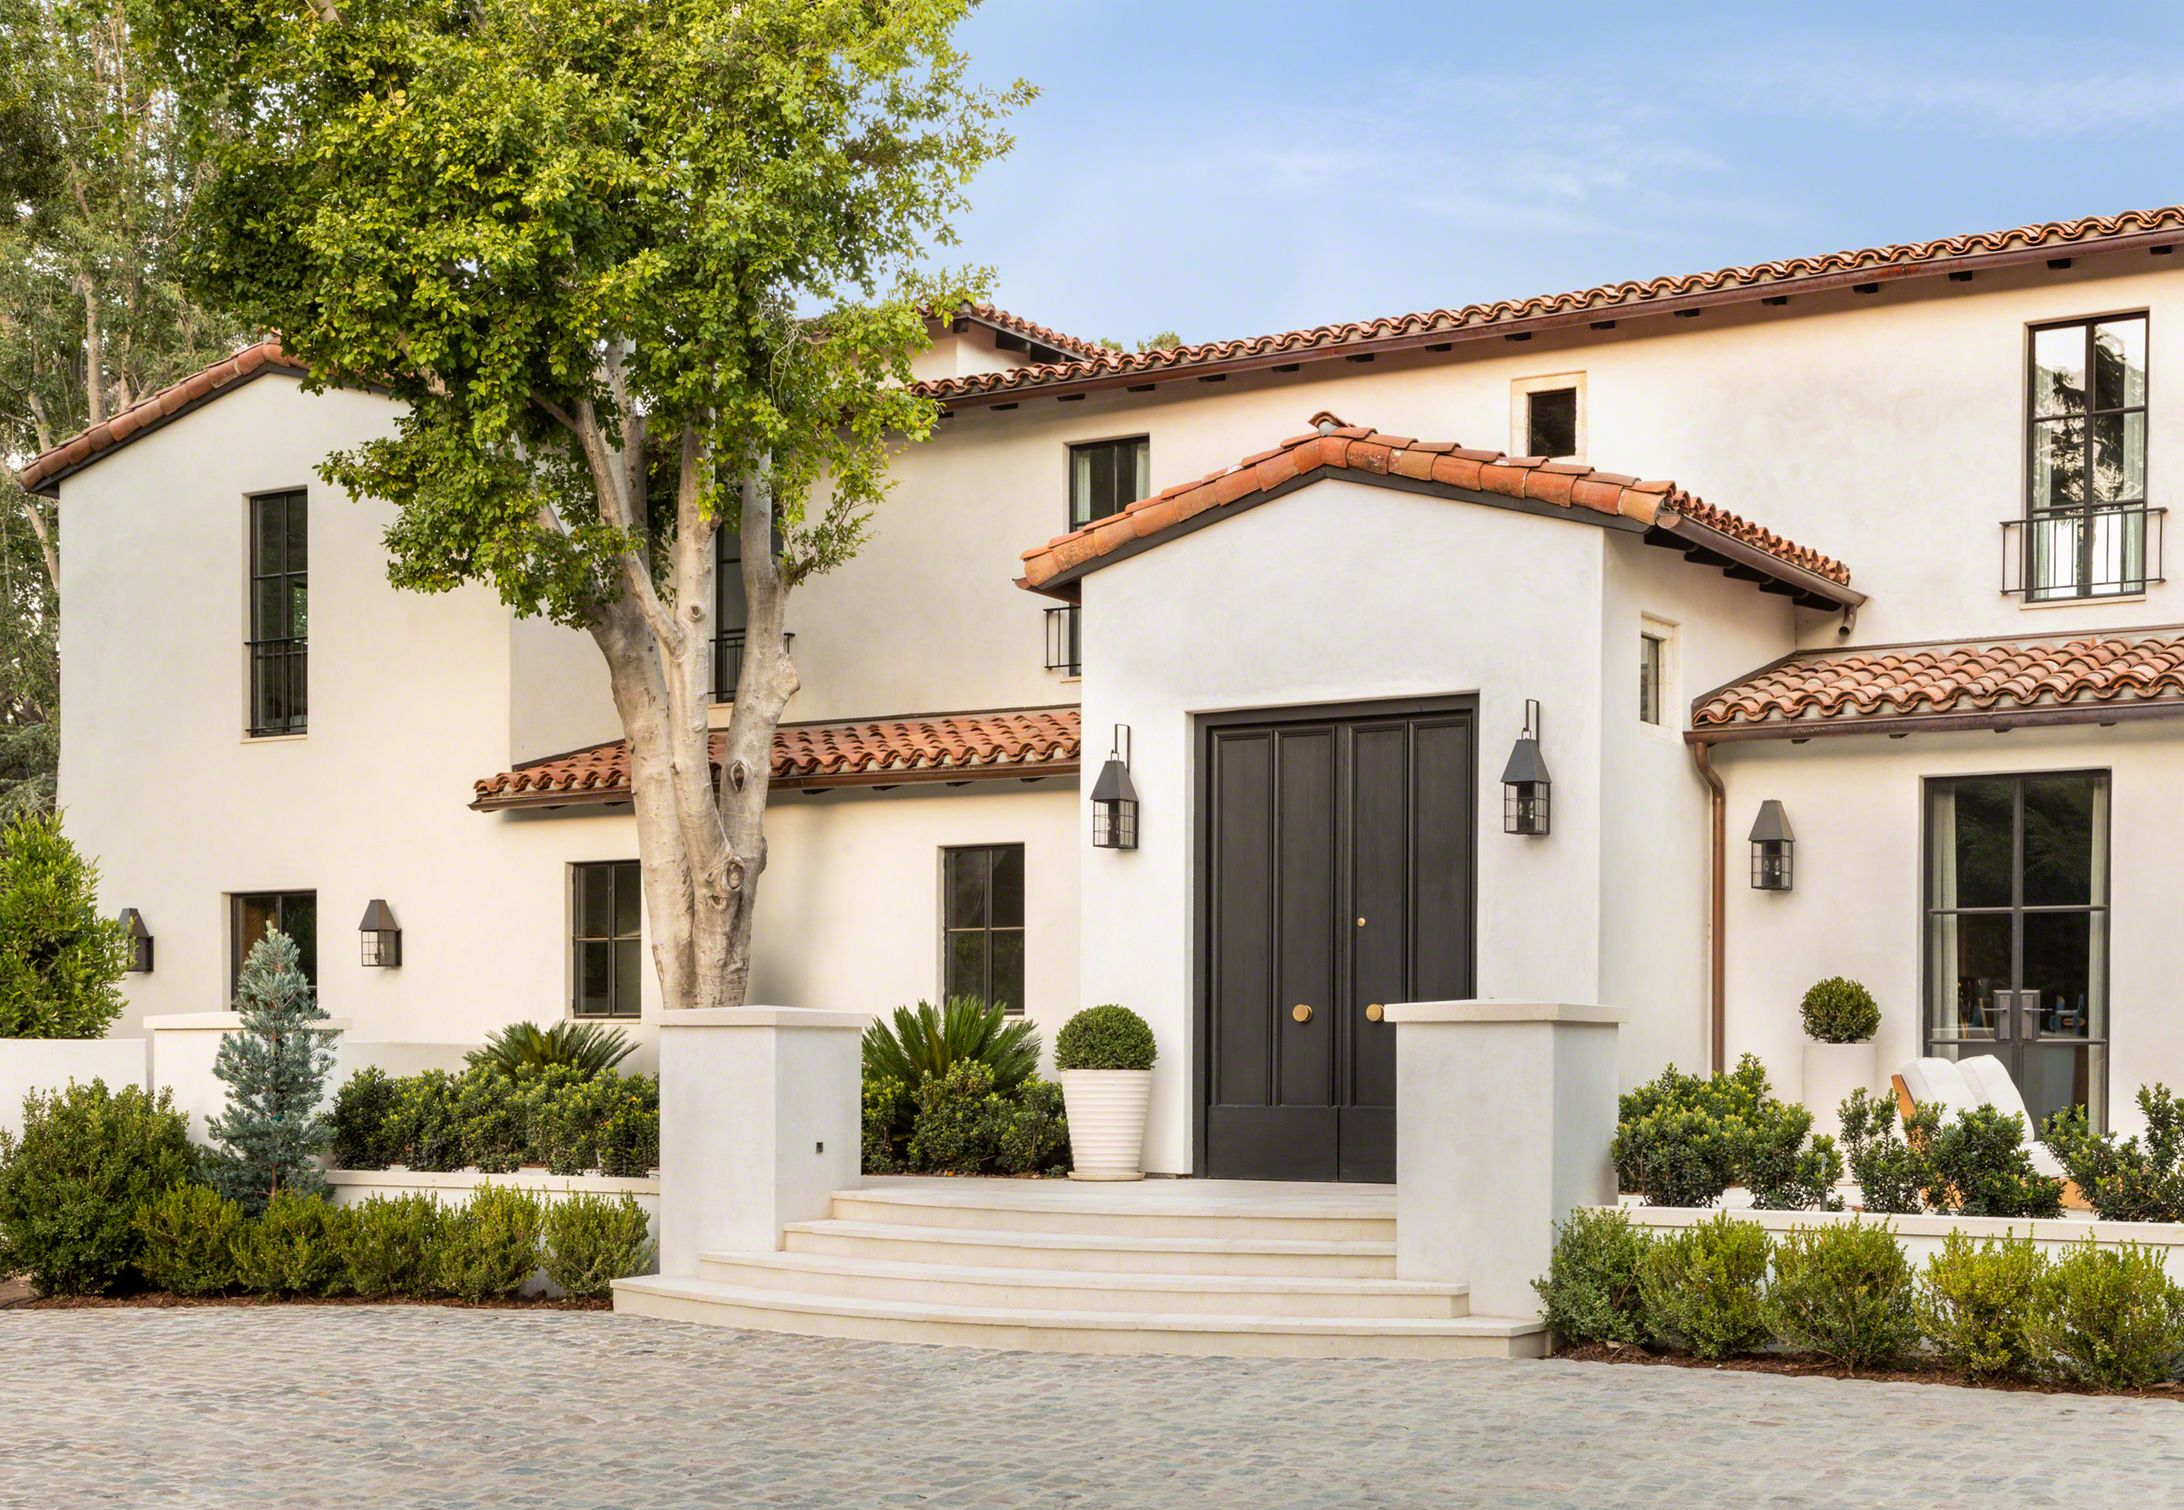 Private Residence Bel Air Los Angeles California Oz Architects In 2020 Spanish House Spanish Colonial Spanish Style Homes